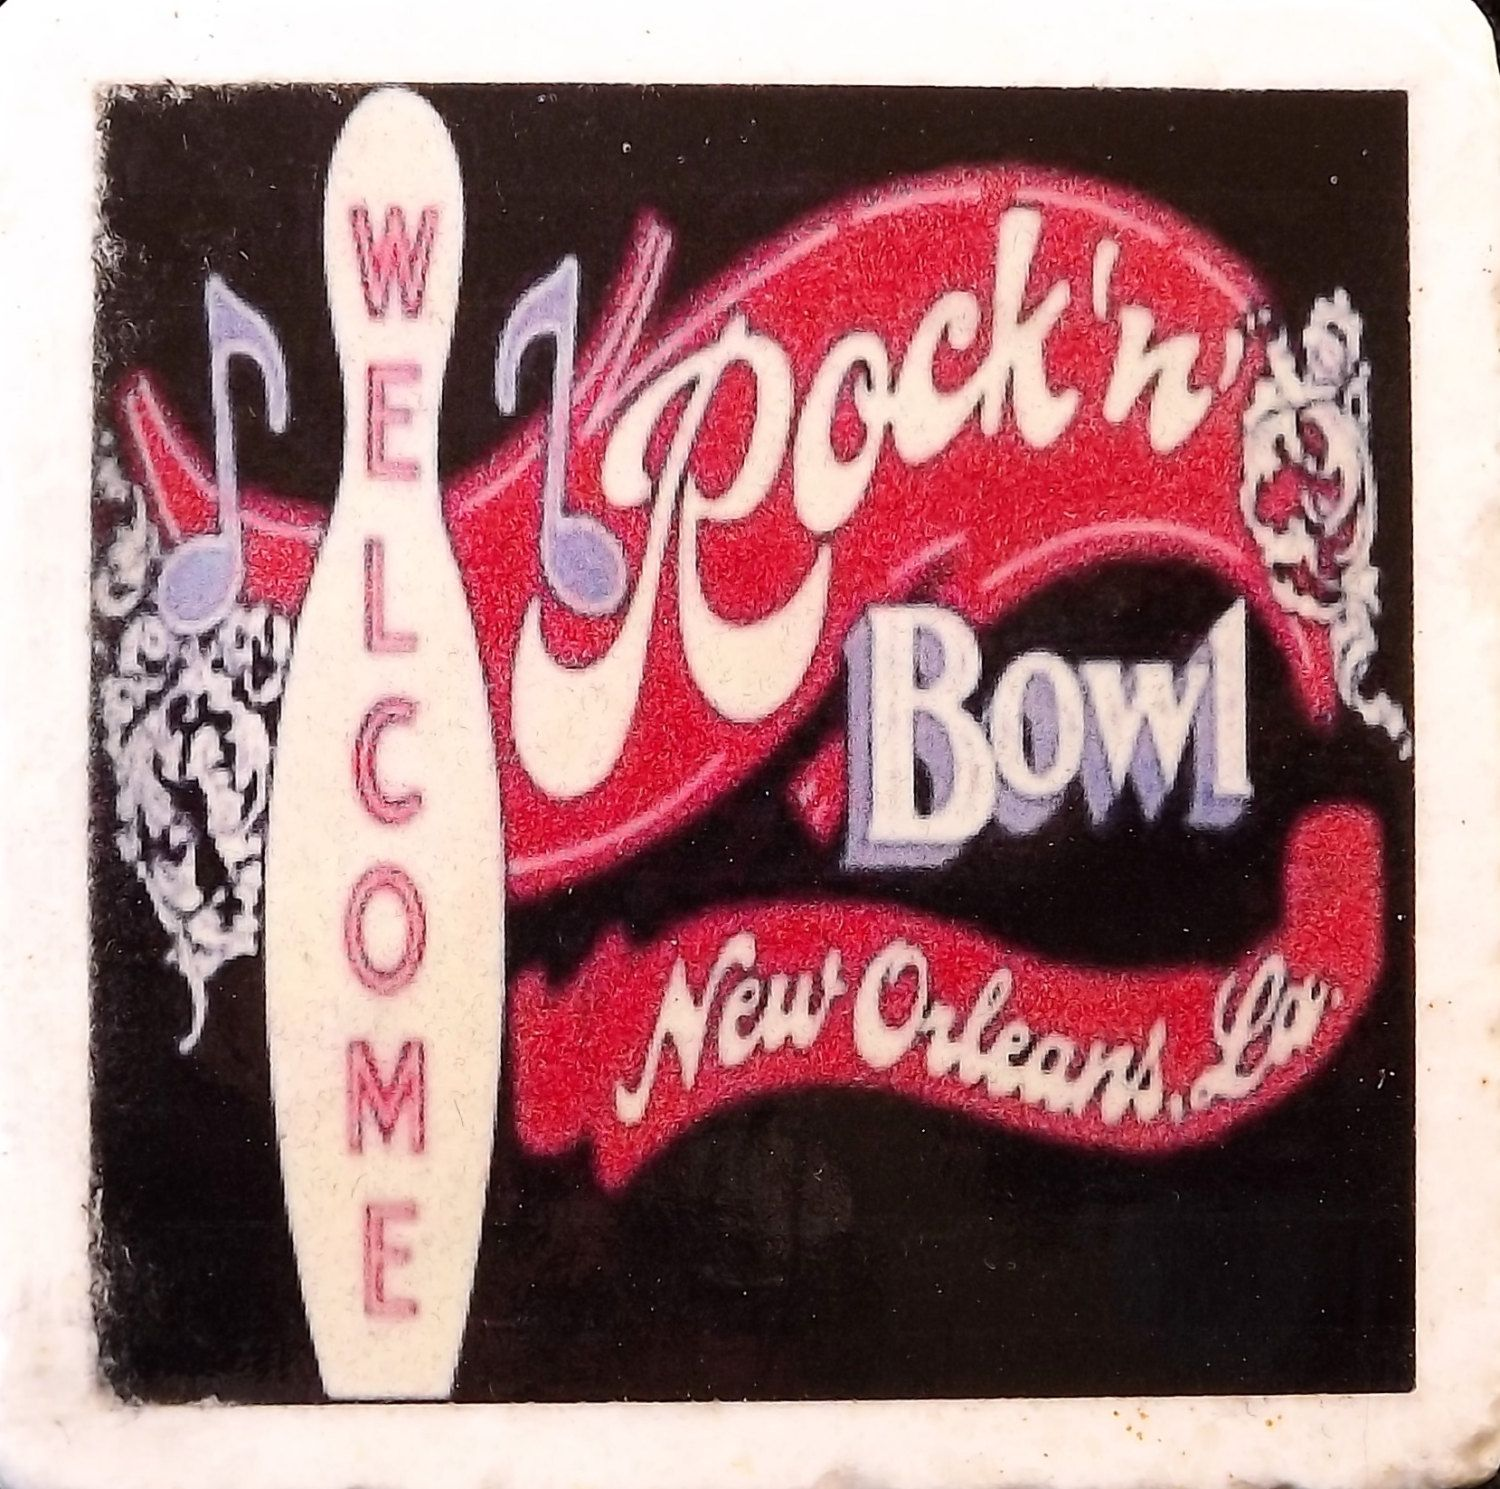 Rock N Bowl New Orleans Coaster | Pinterest | Coasters, Epoxy and Cork